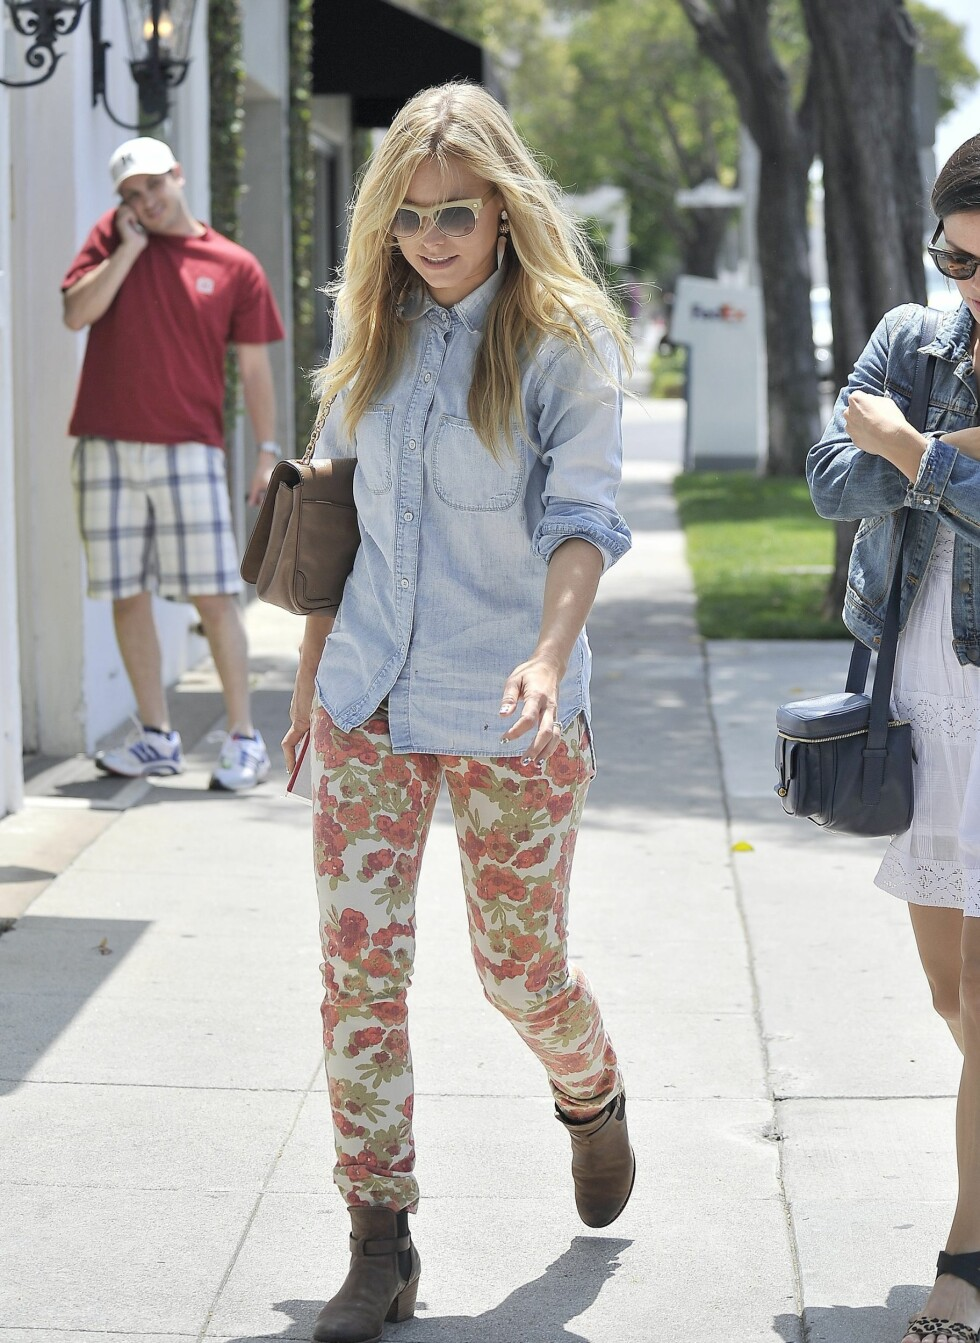 Rachel Bilson and Kristen Bell head to the Madewell boutique in Beverly Hills, CA.  Pictured: Kristen Bell   Ref: SPL406336  150612   Picture by: Oliver S Wolf / Splash News  Splash News and Pictures Los Angeles:310-821-2666 New York:212-619-2666 London:870-934-2666 photodesk@splashnews.com  *** Local Caption *** World Rights Foto: All Over Press